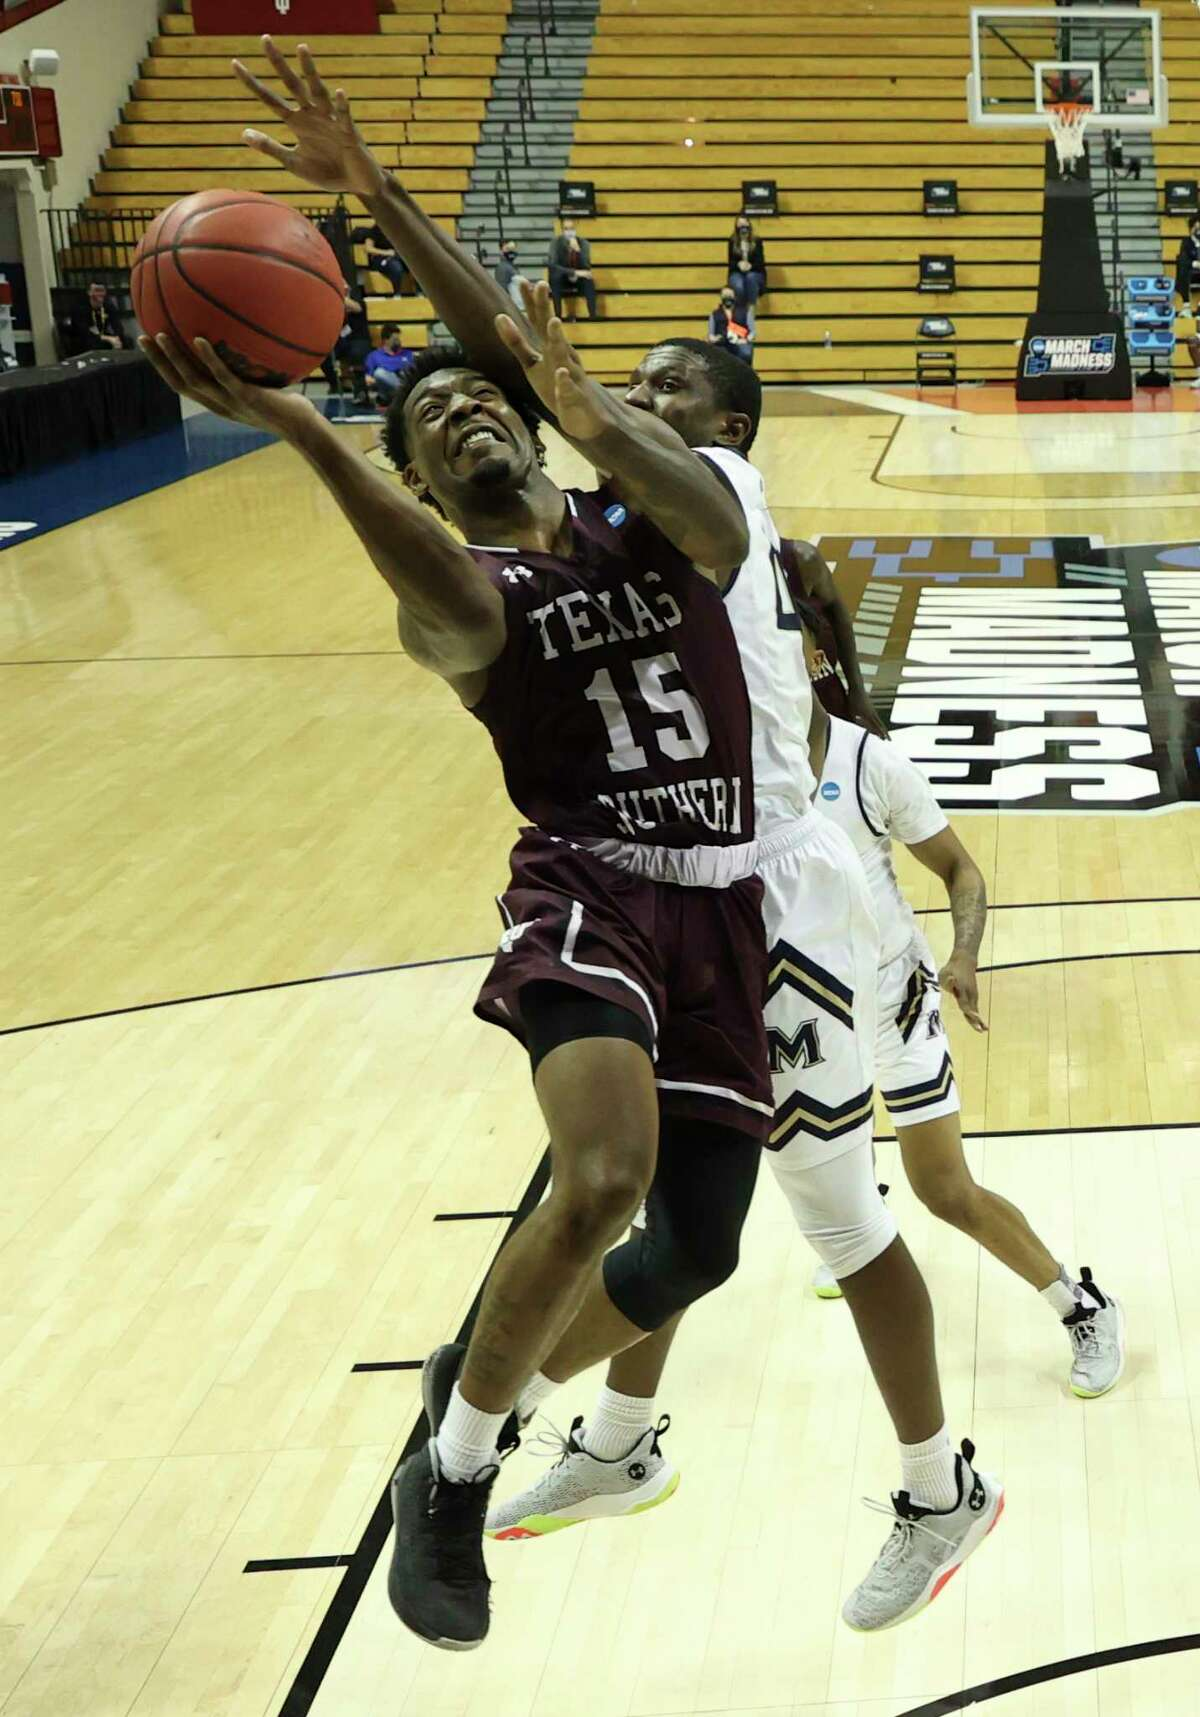 BLOOMINGTON, INDIANA - MARCH 18: Justin Hopkins #15 of the Texas Southern Tigers drives to the basket during the second half against the Mount St. Mary's Mountaineers in a First Four game during the NCAA Men's Basketball Tournament at Assembly Hall on March 18, 2021 in Bloomington, Indiana.